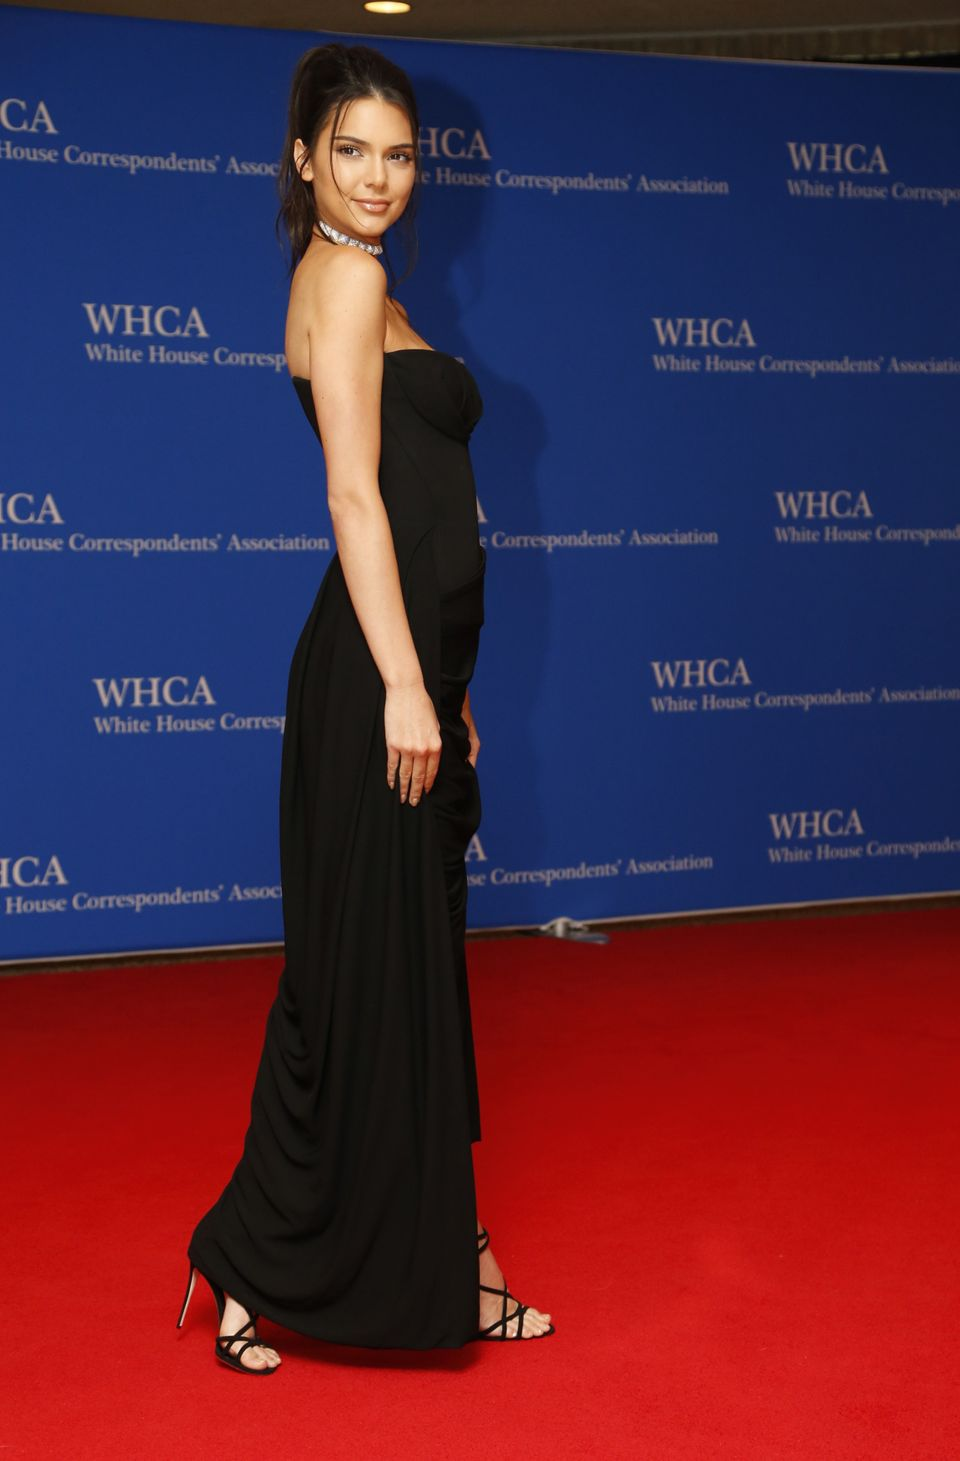 Model Kendall Jenner arrives on the red carpet for the annual White House Correspondents Association Dinner in Washington, U.